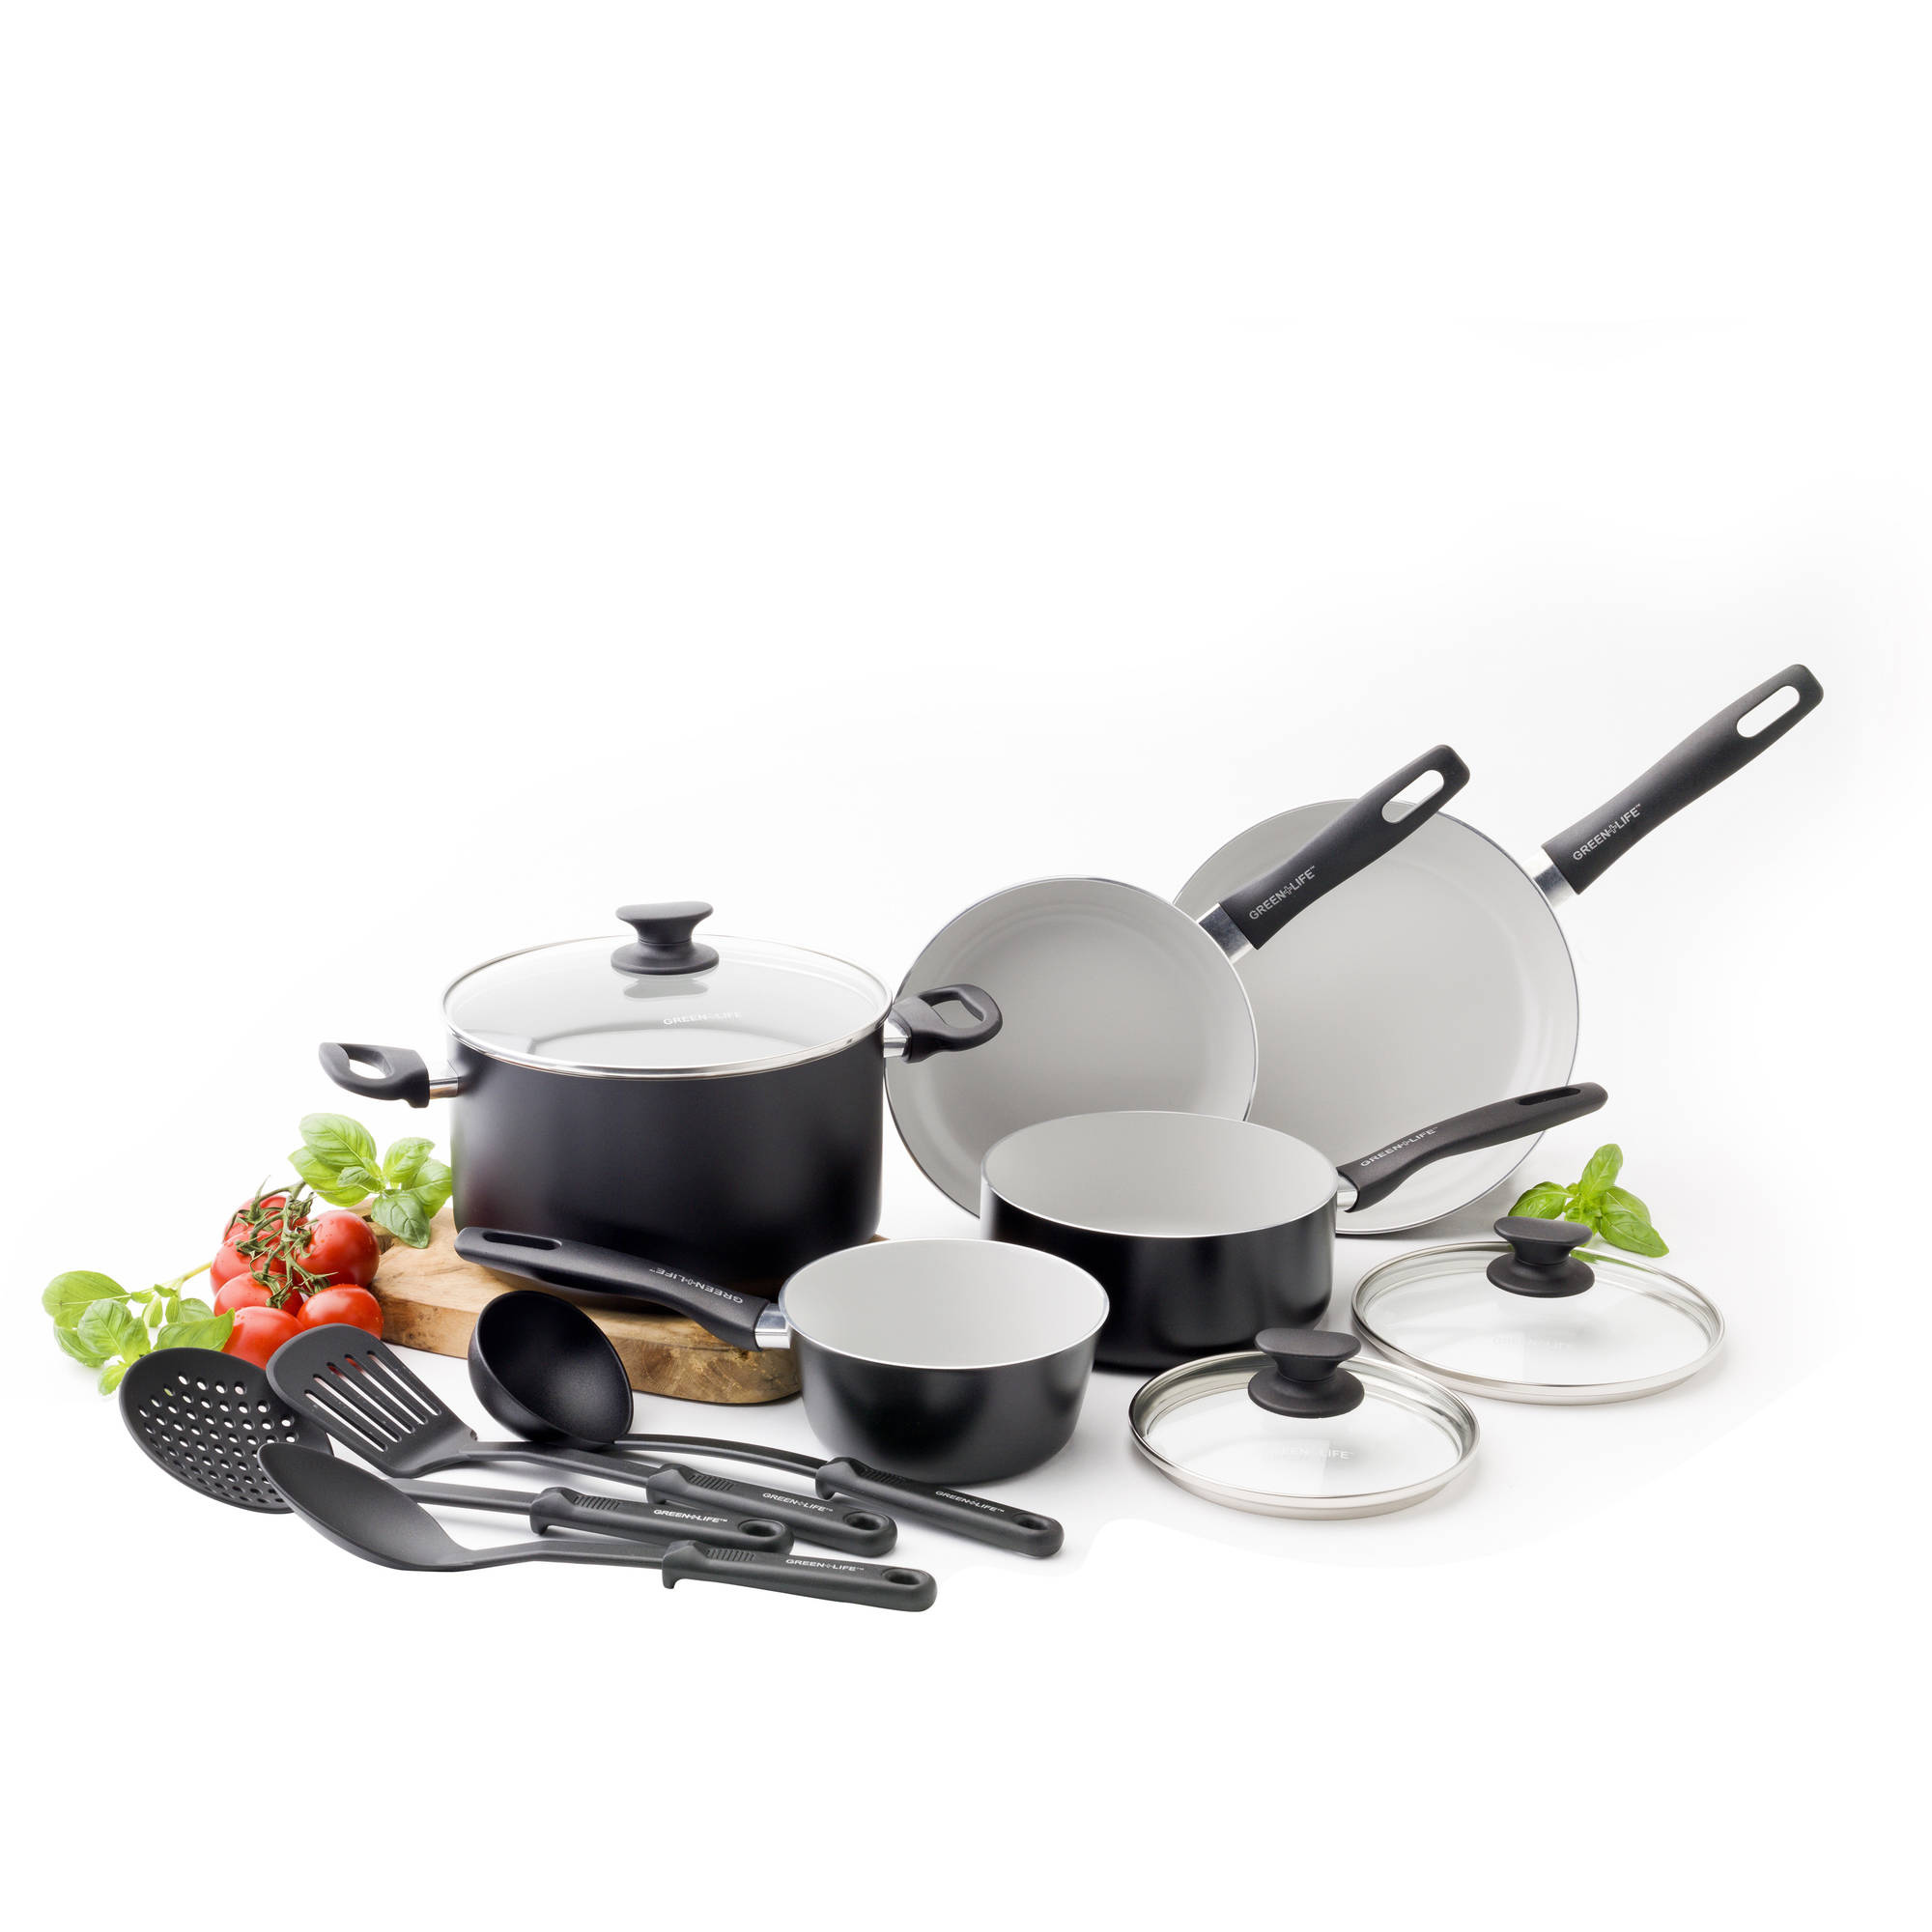 GreenLife Everyday Value Healthy Ceramic Non-Stick 12 Piece Cookware Set, Black